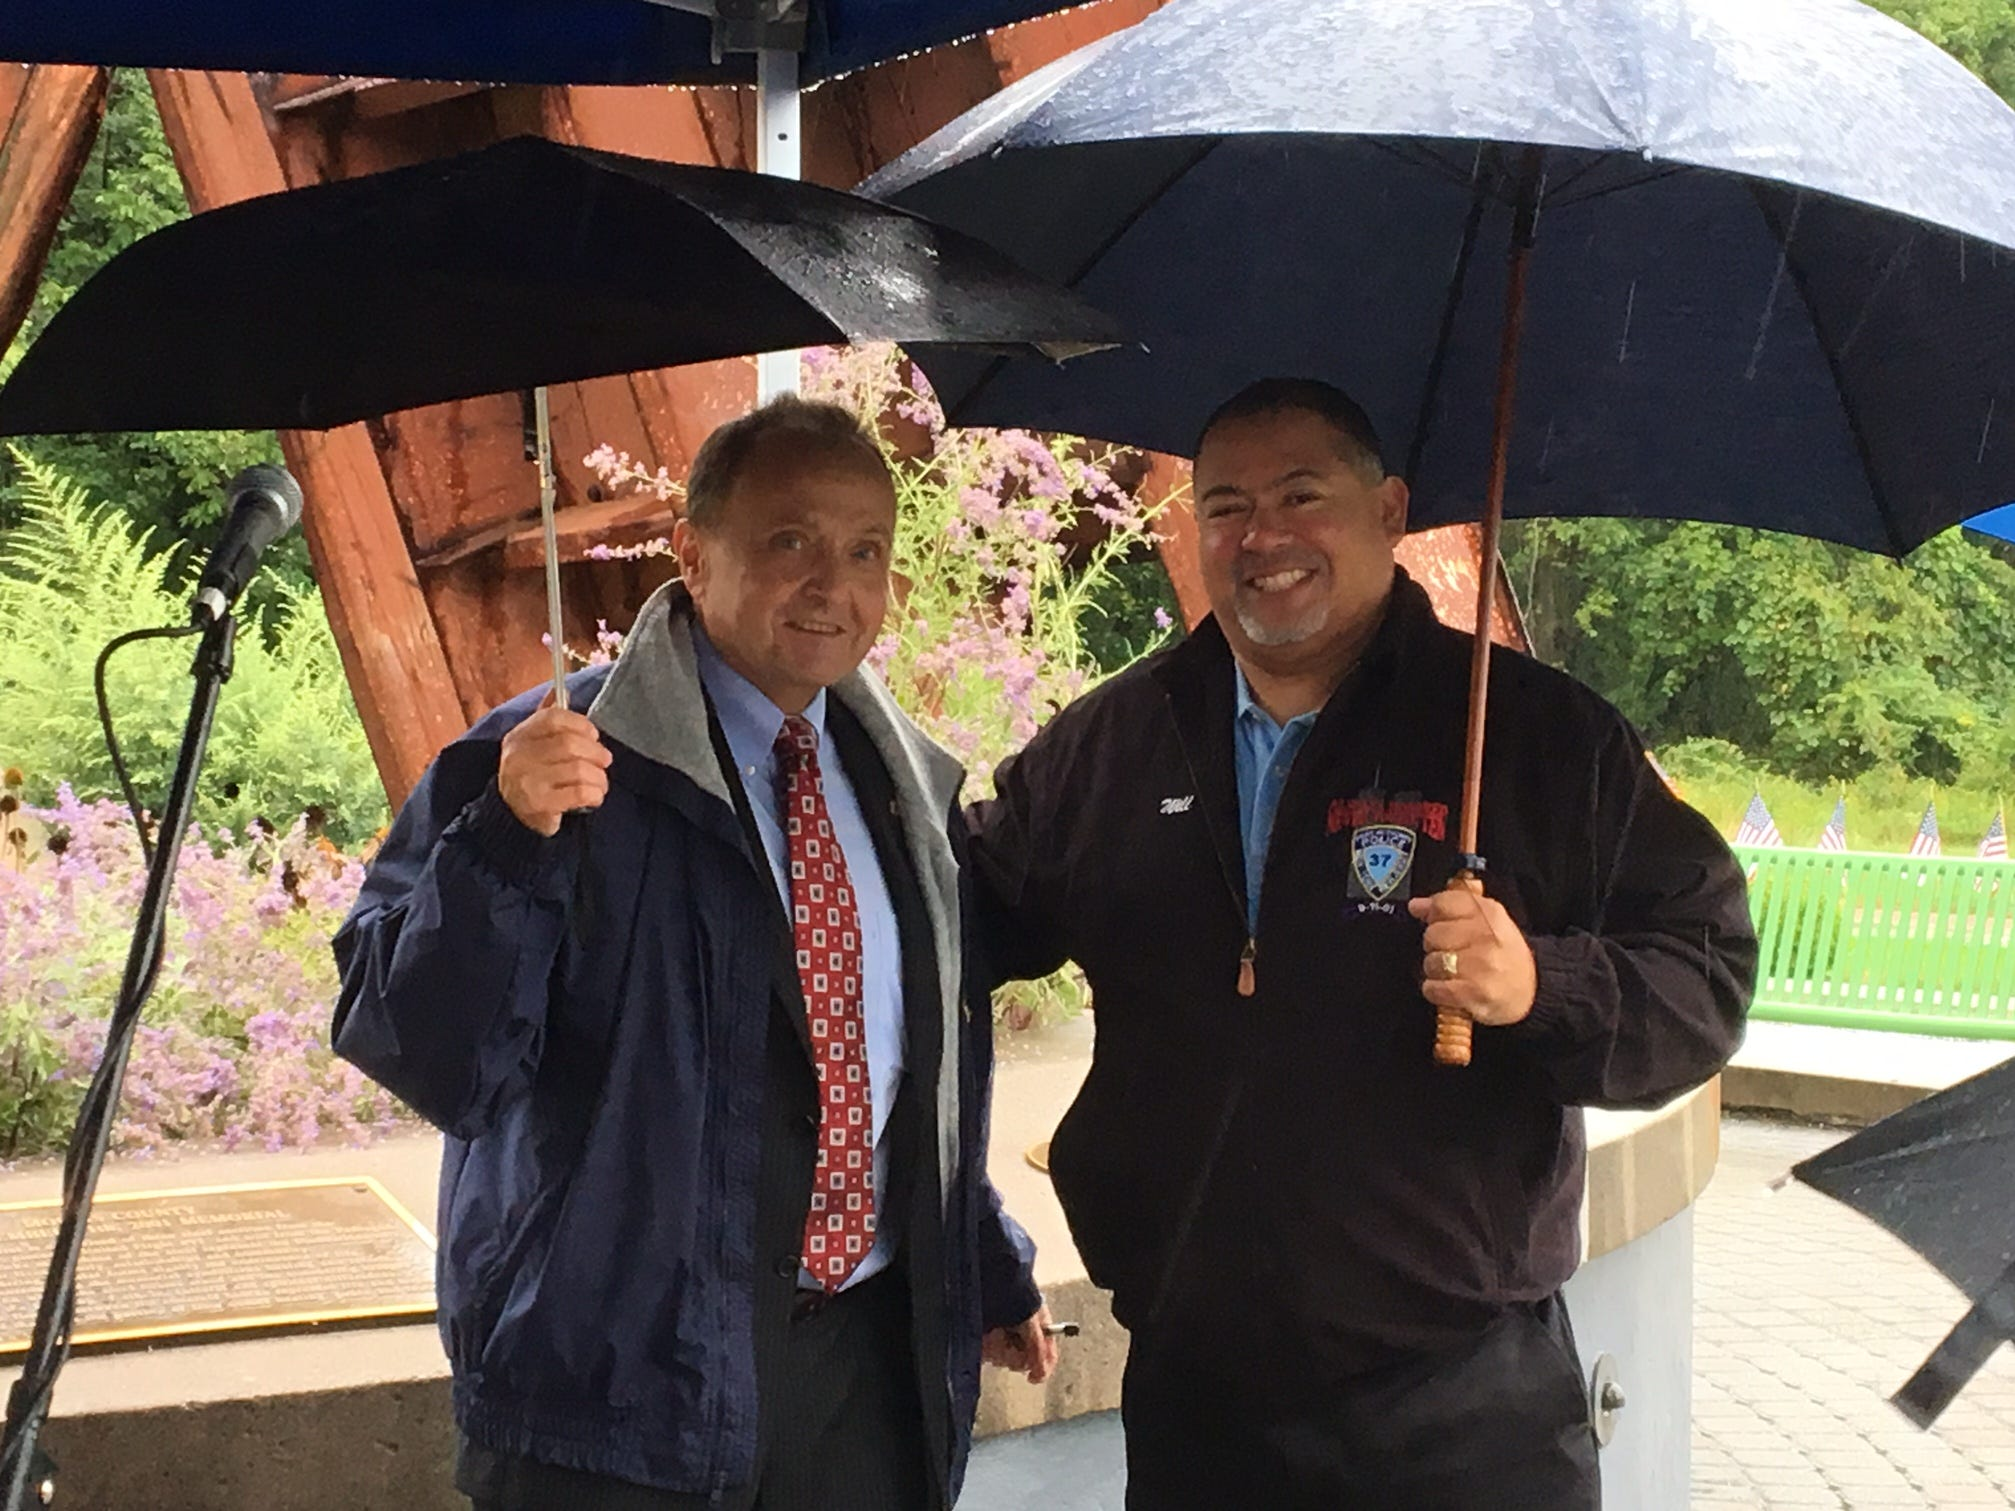 Former Port Authority Police Officer Will Jimeno, R, with Morris County Administrator John Bonanni